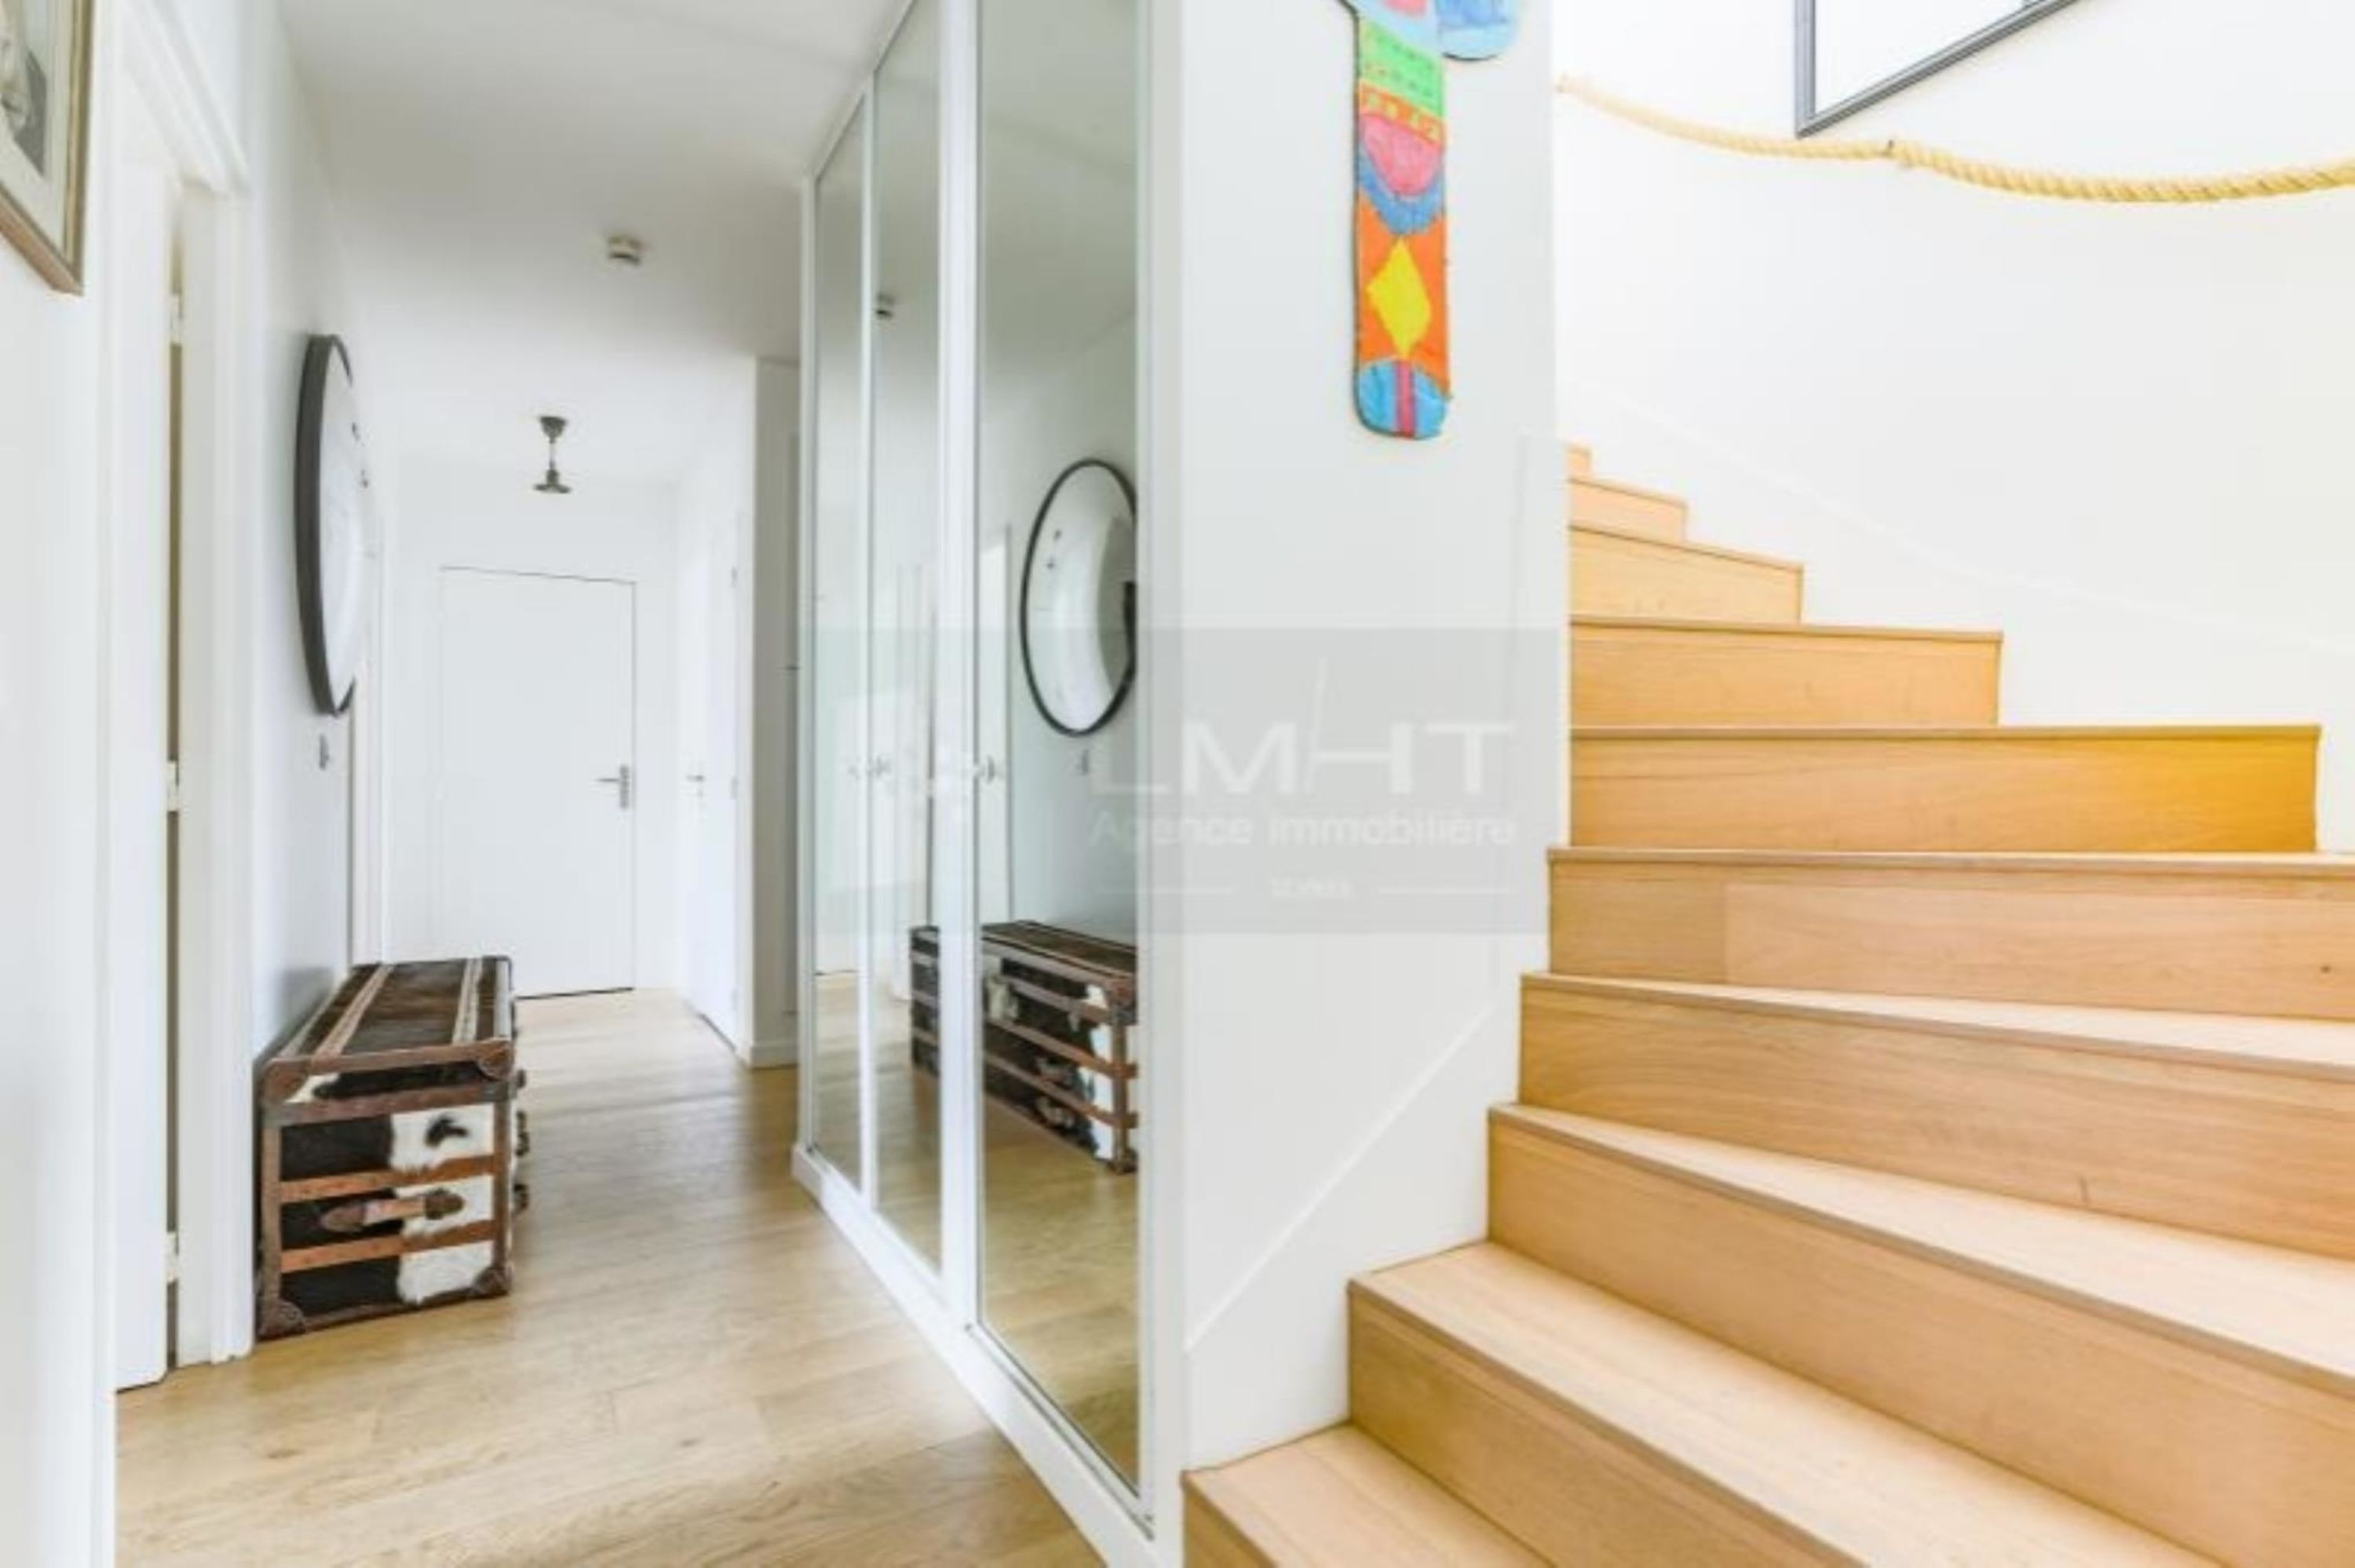 agence immobilière sevres 92 le chesnay 78 achat vente location appartement maison immobilier LMHT ANF NSEVSARG